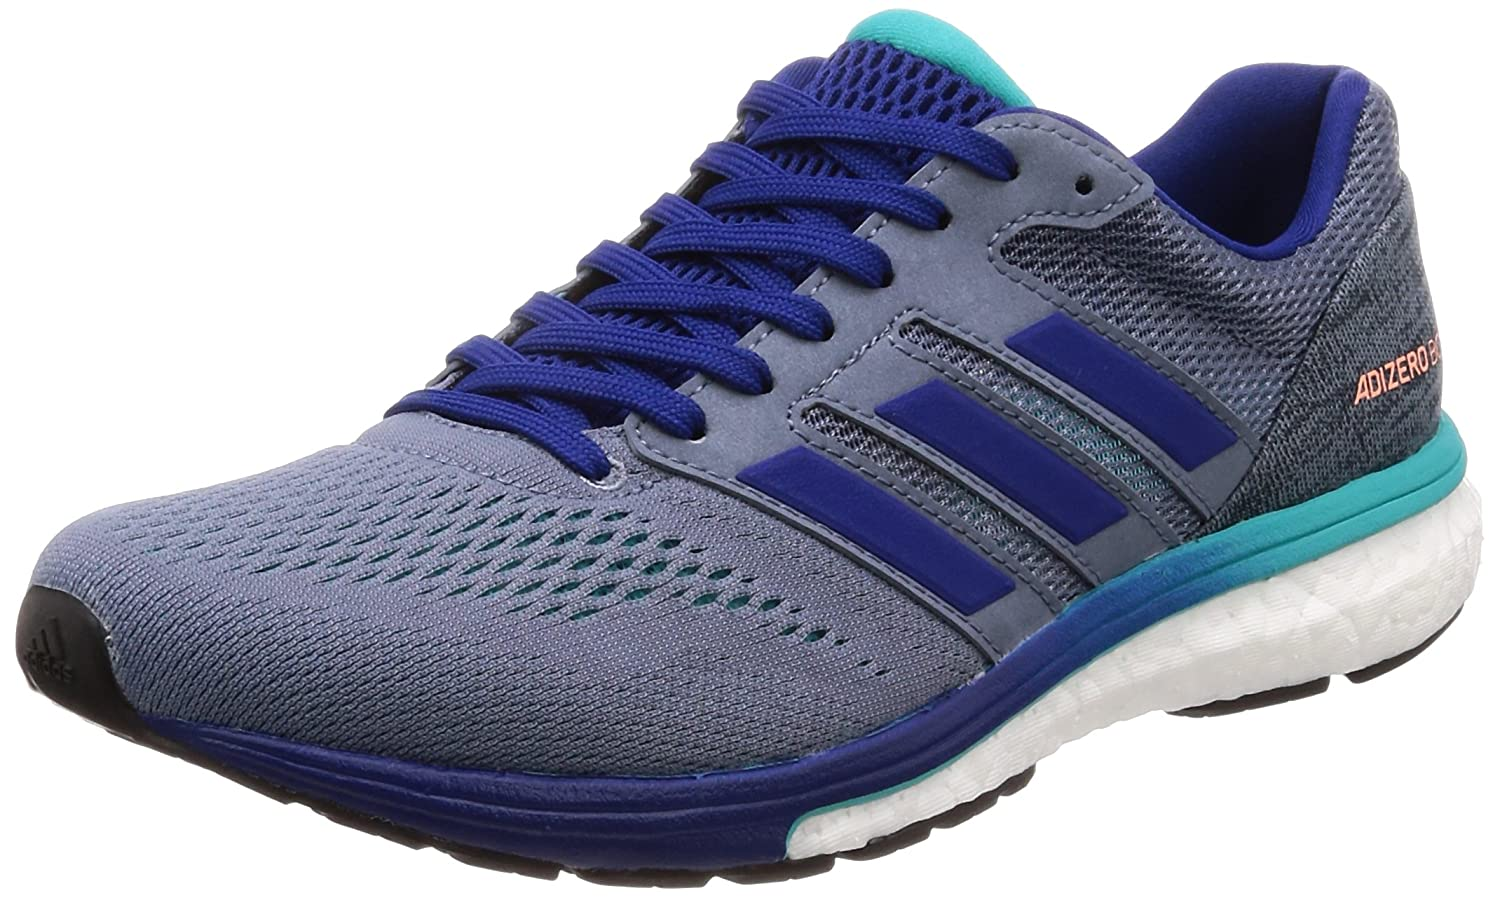 Adidas Men's Adizero Boston 7 Running Shoes M PwXZlkiuOT